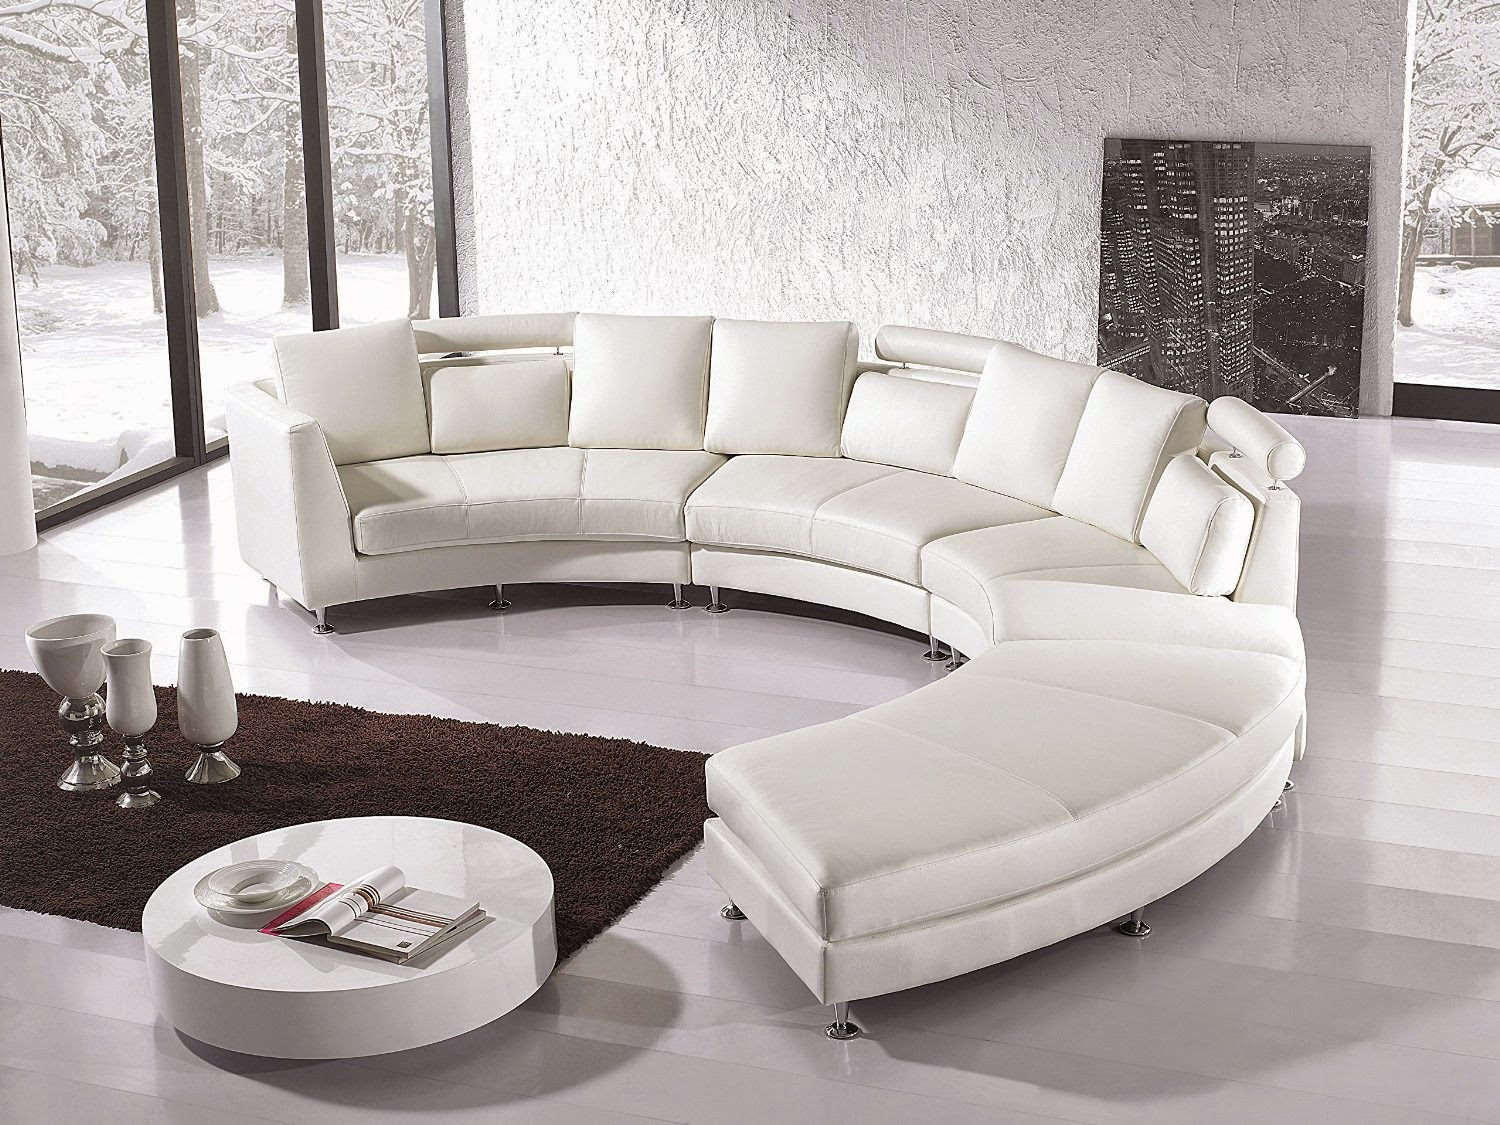 Beliani Rotunde Brown Curved Leather Sofa For